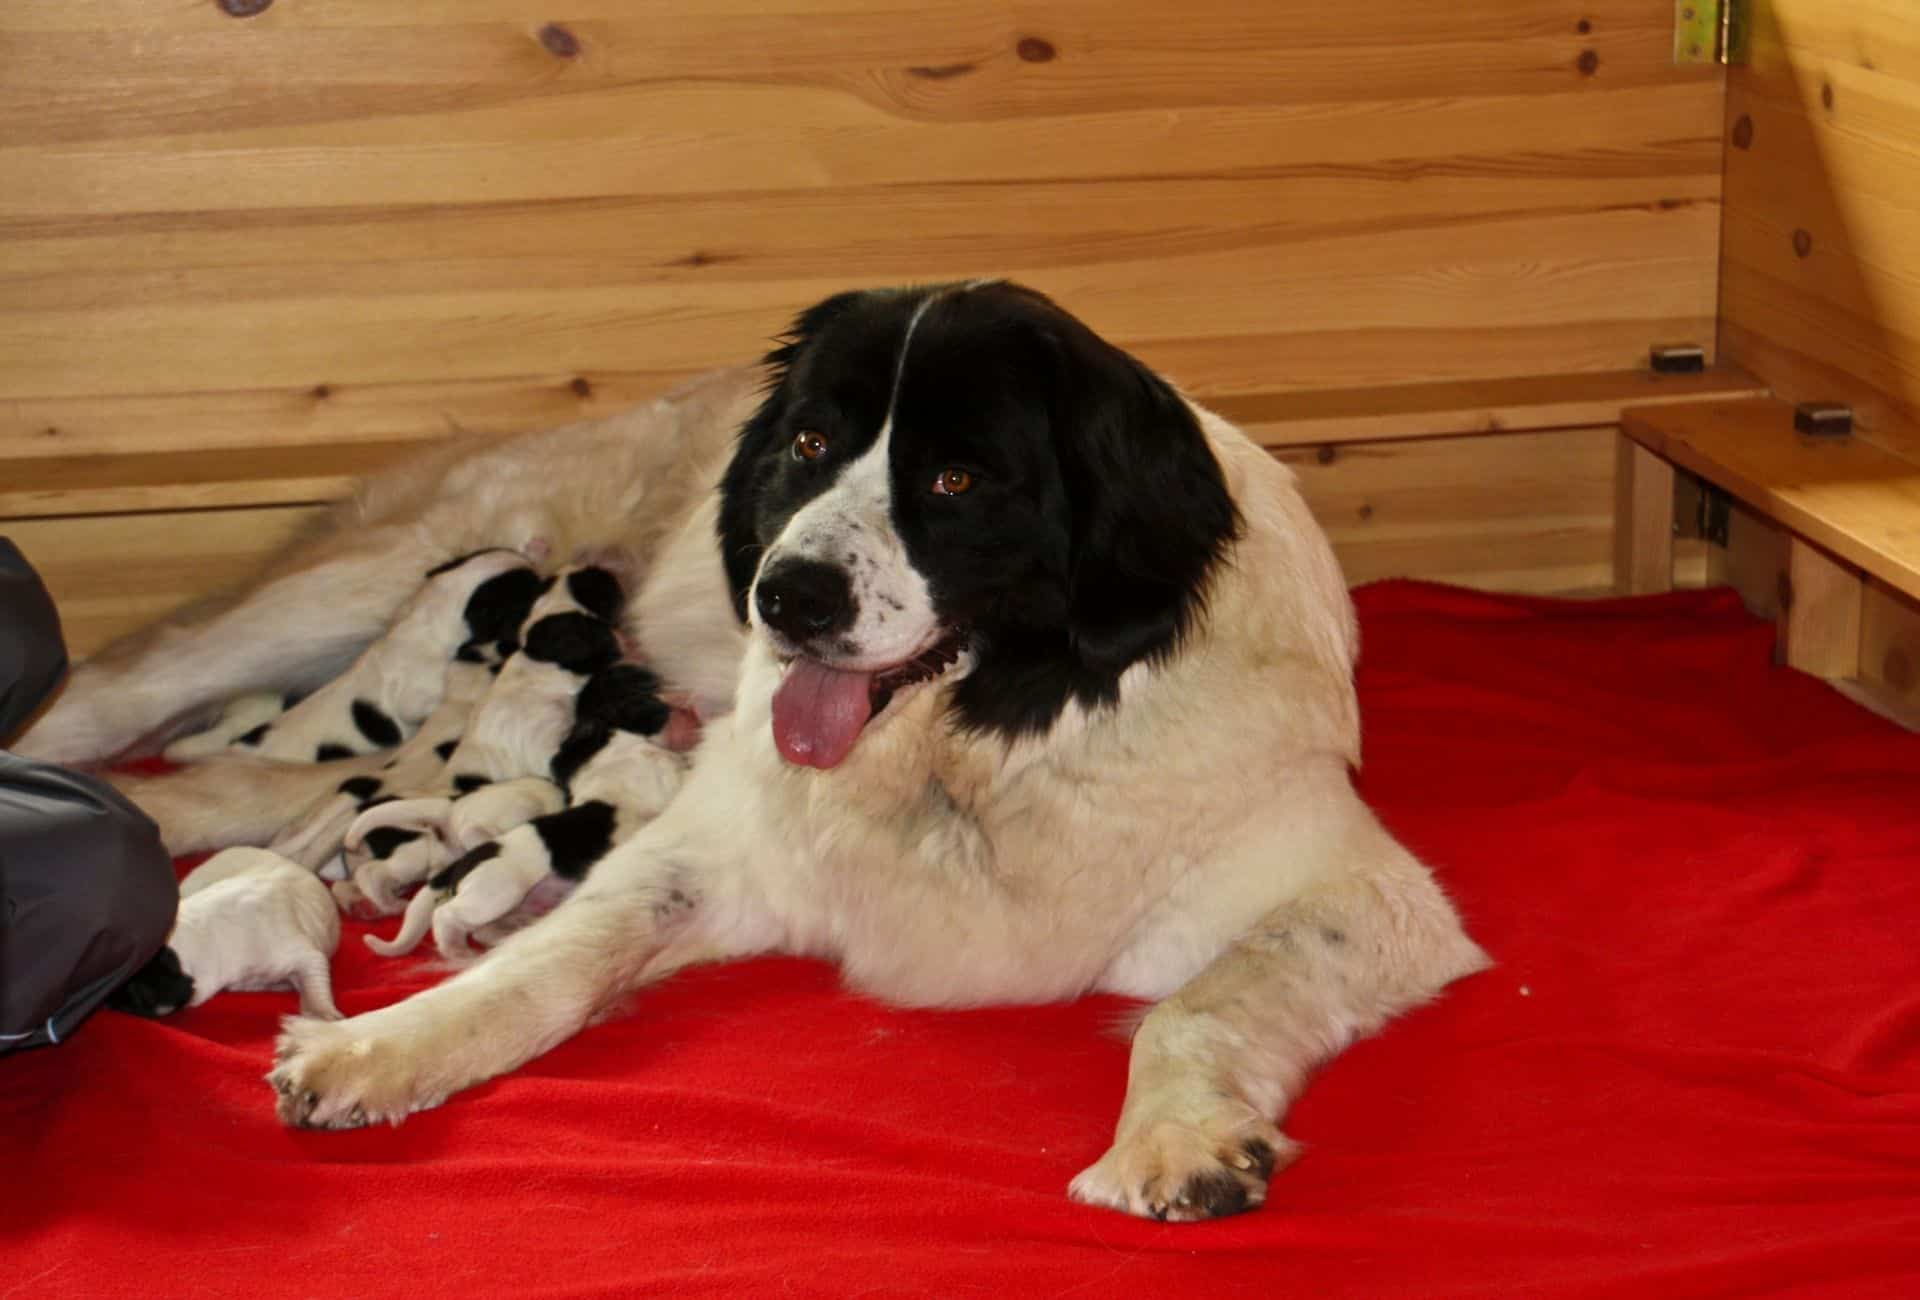 Big female dog nursing her puppies inside a wooden whelping box that is laid out with a red blanket.